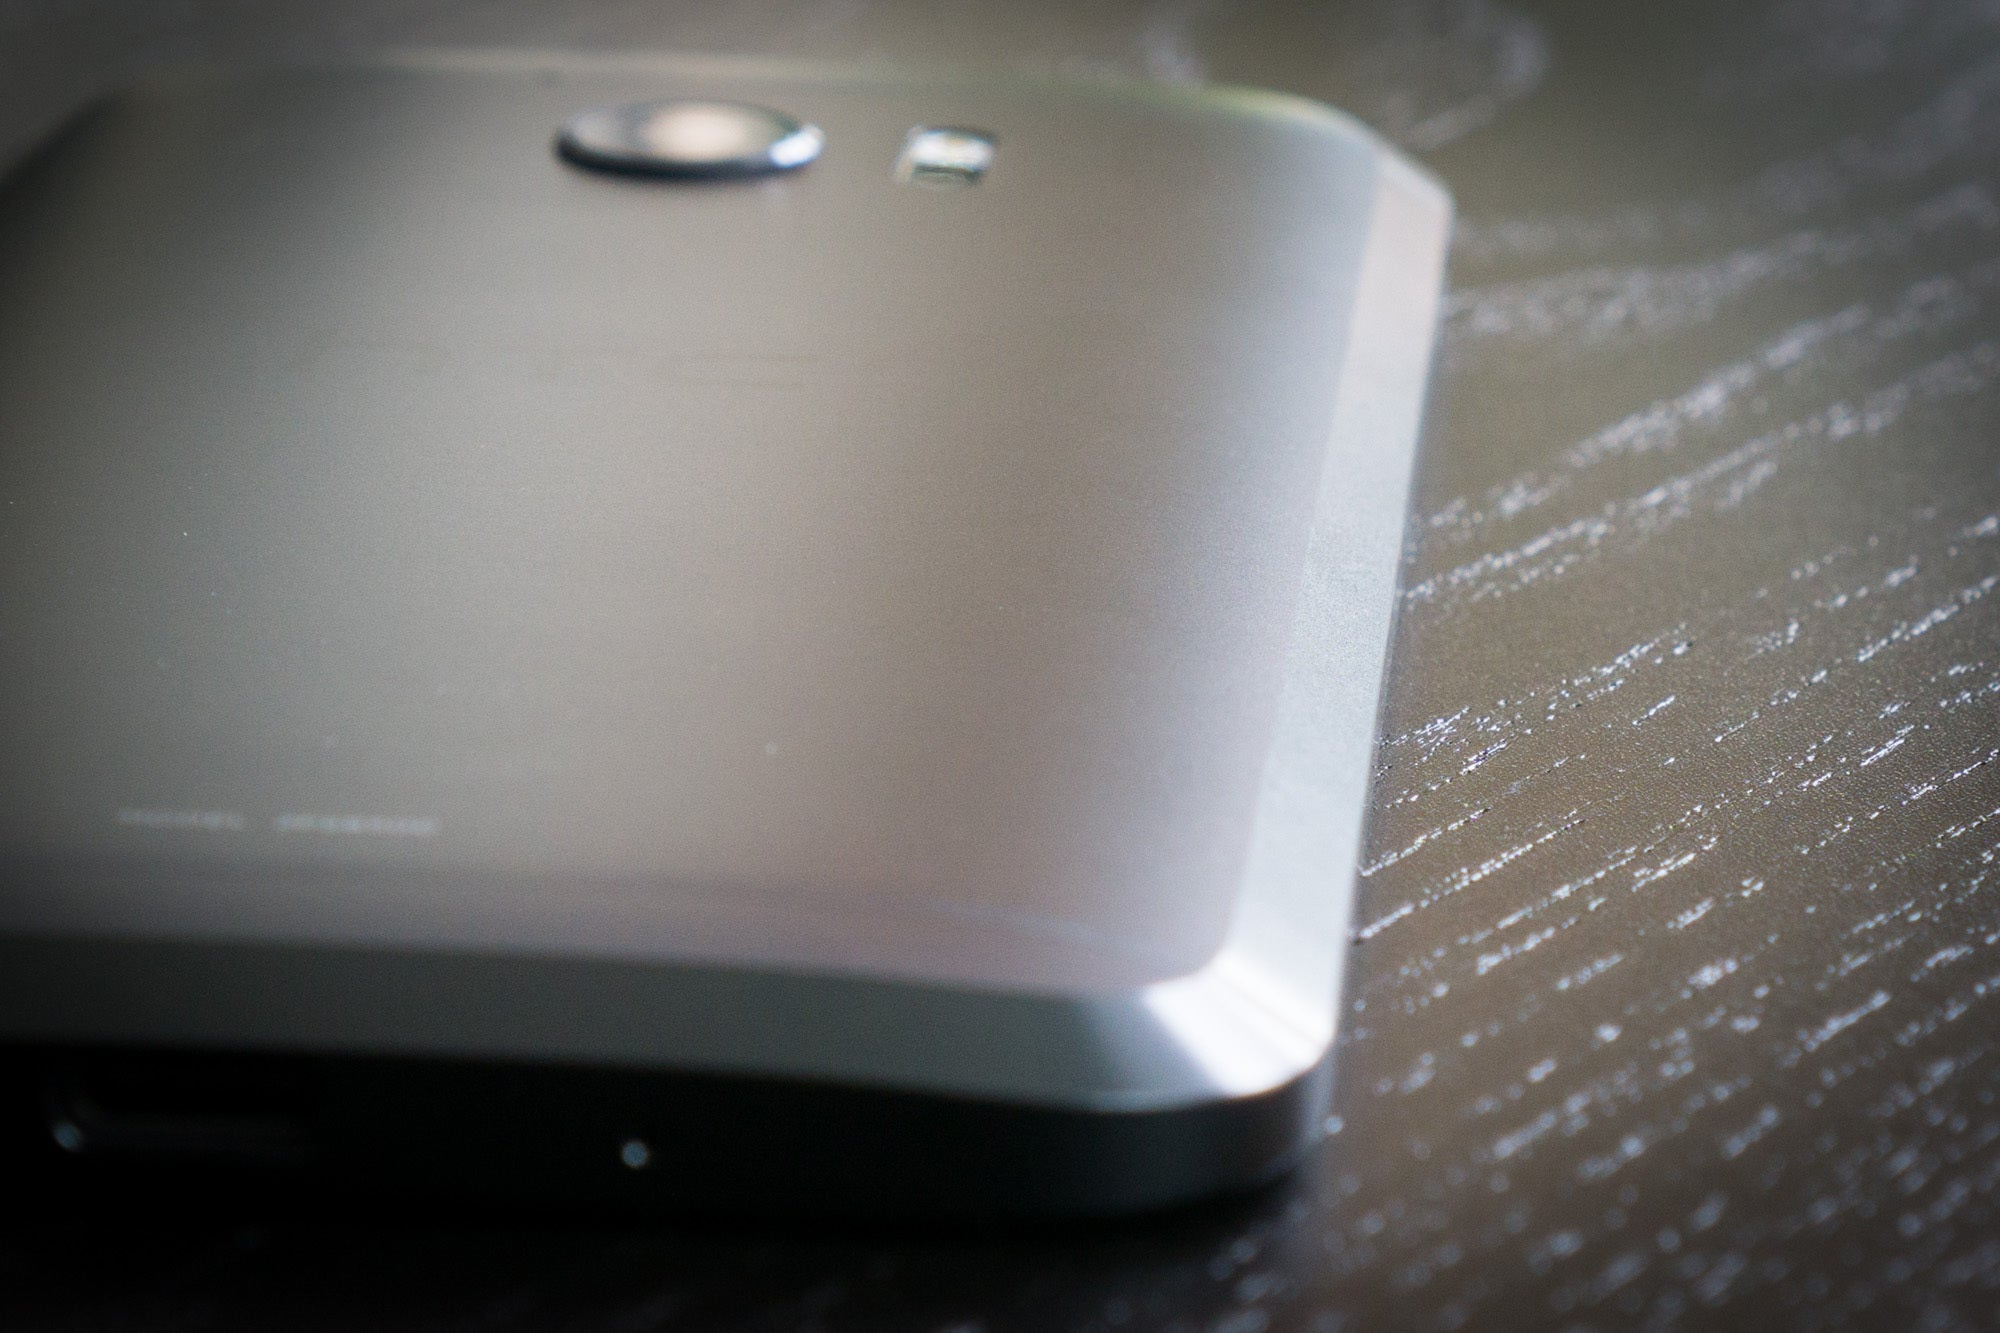 Provides The HTC One M8 Enough Innovations to Justify Its Price?